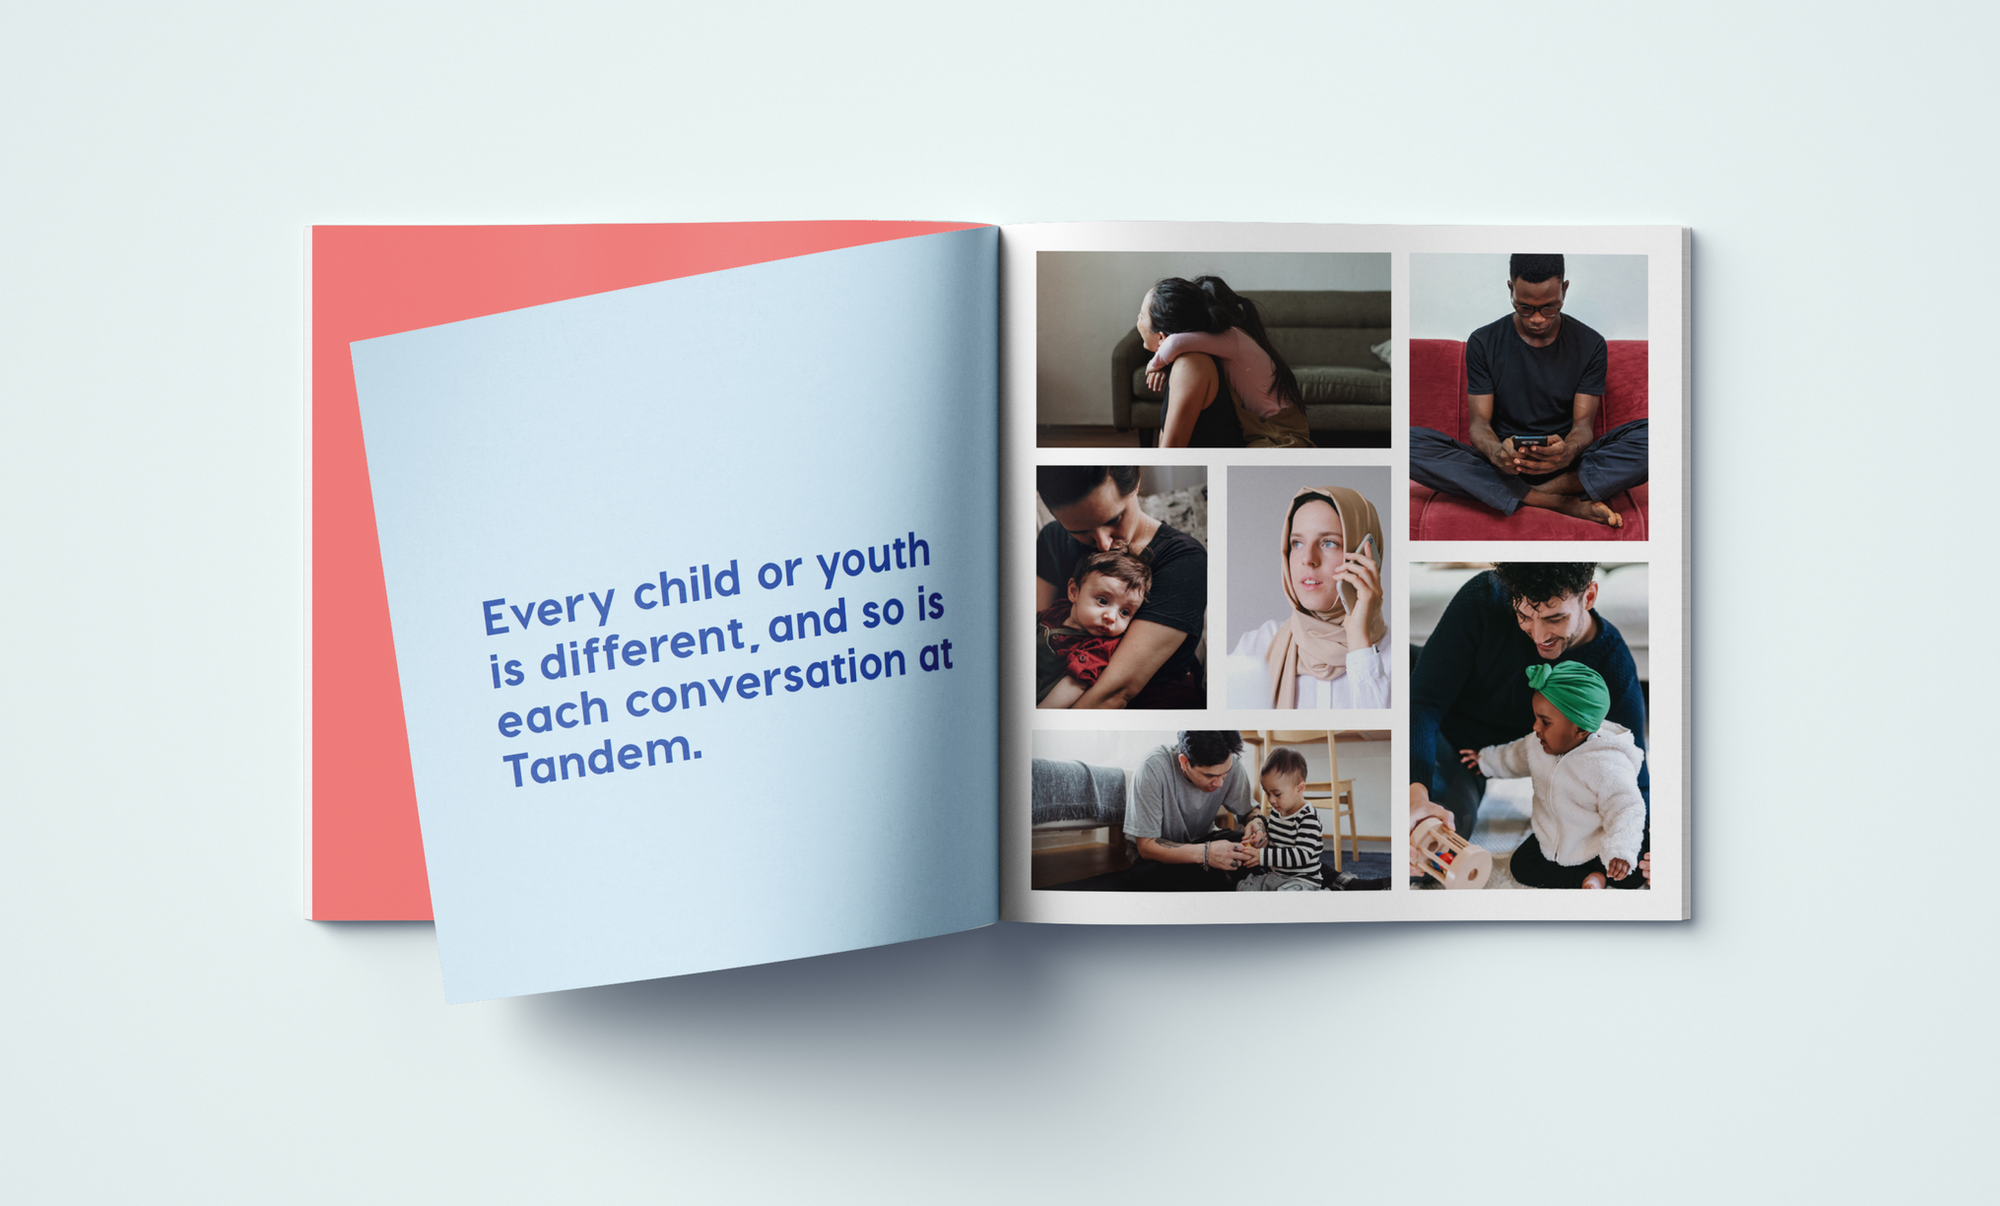 Book with images reading: Every child or youth is different, and so is each conversation at Tandem.